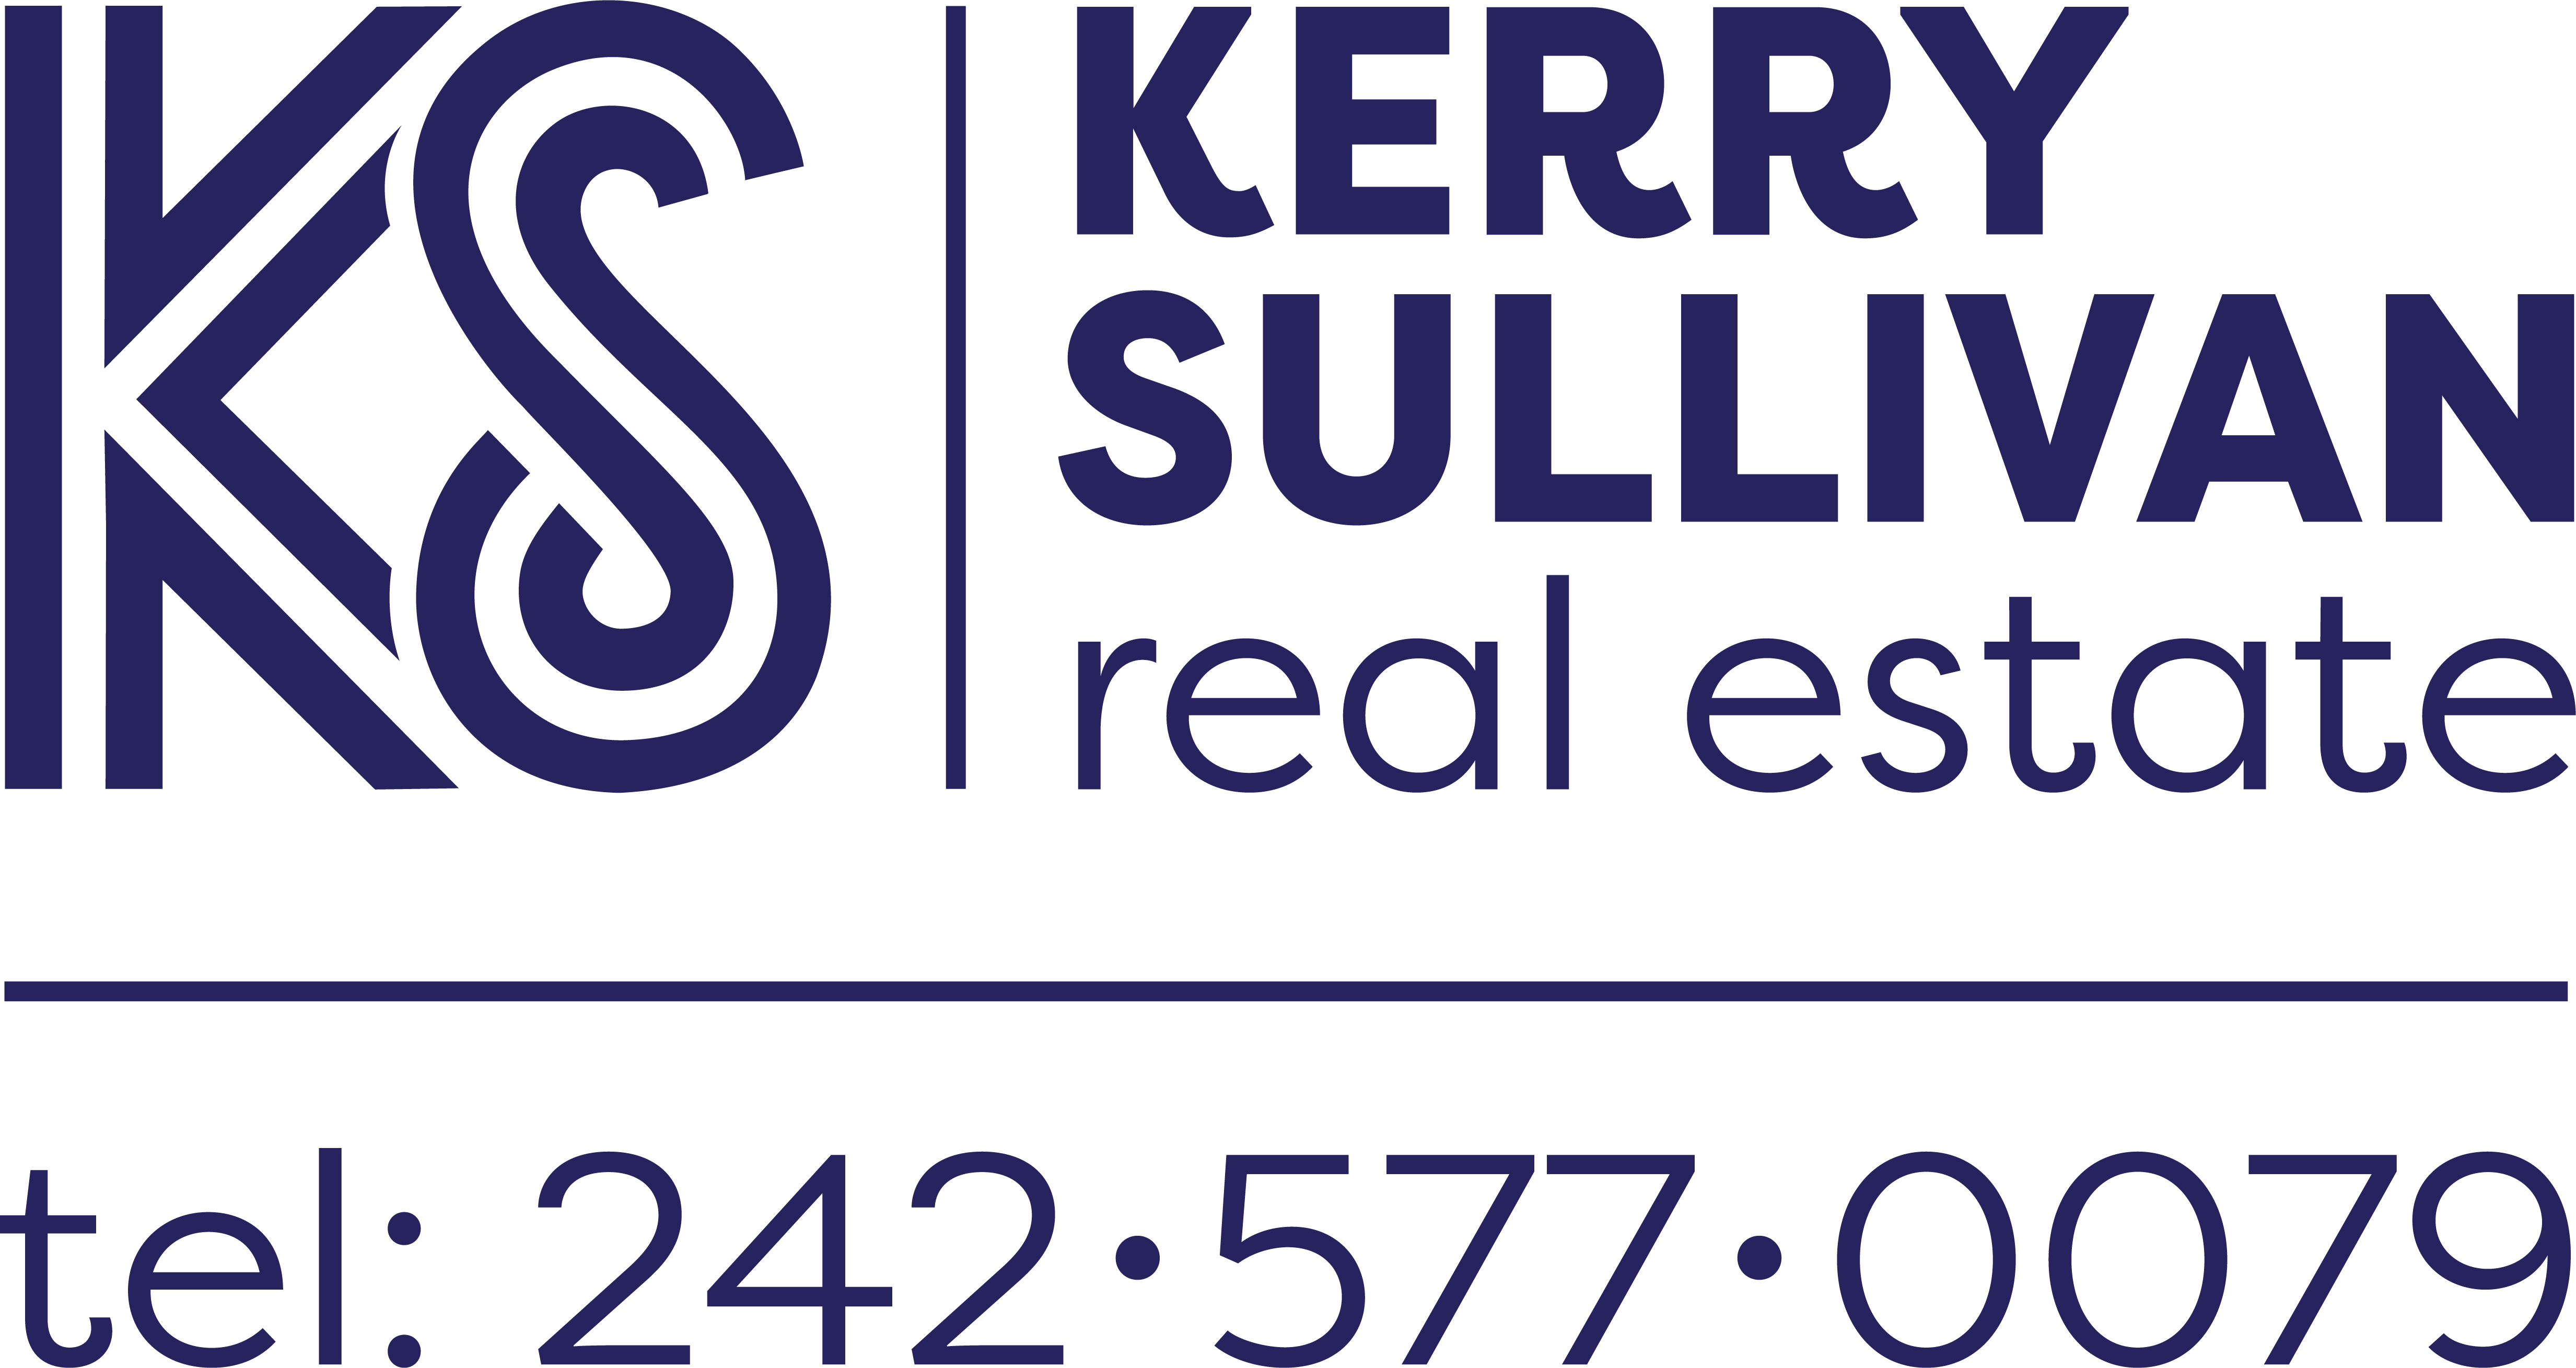 Kerry Sullivan Real Estate